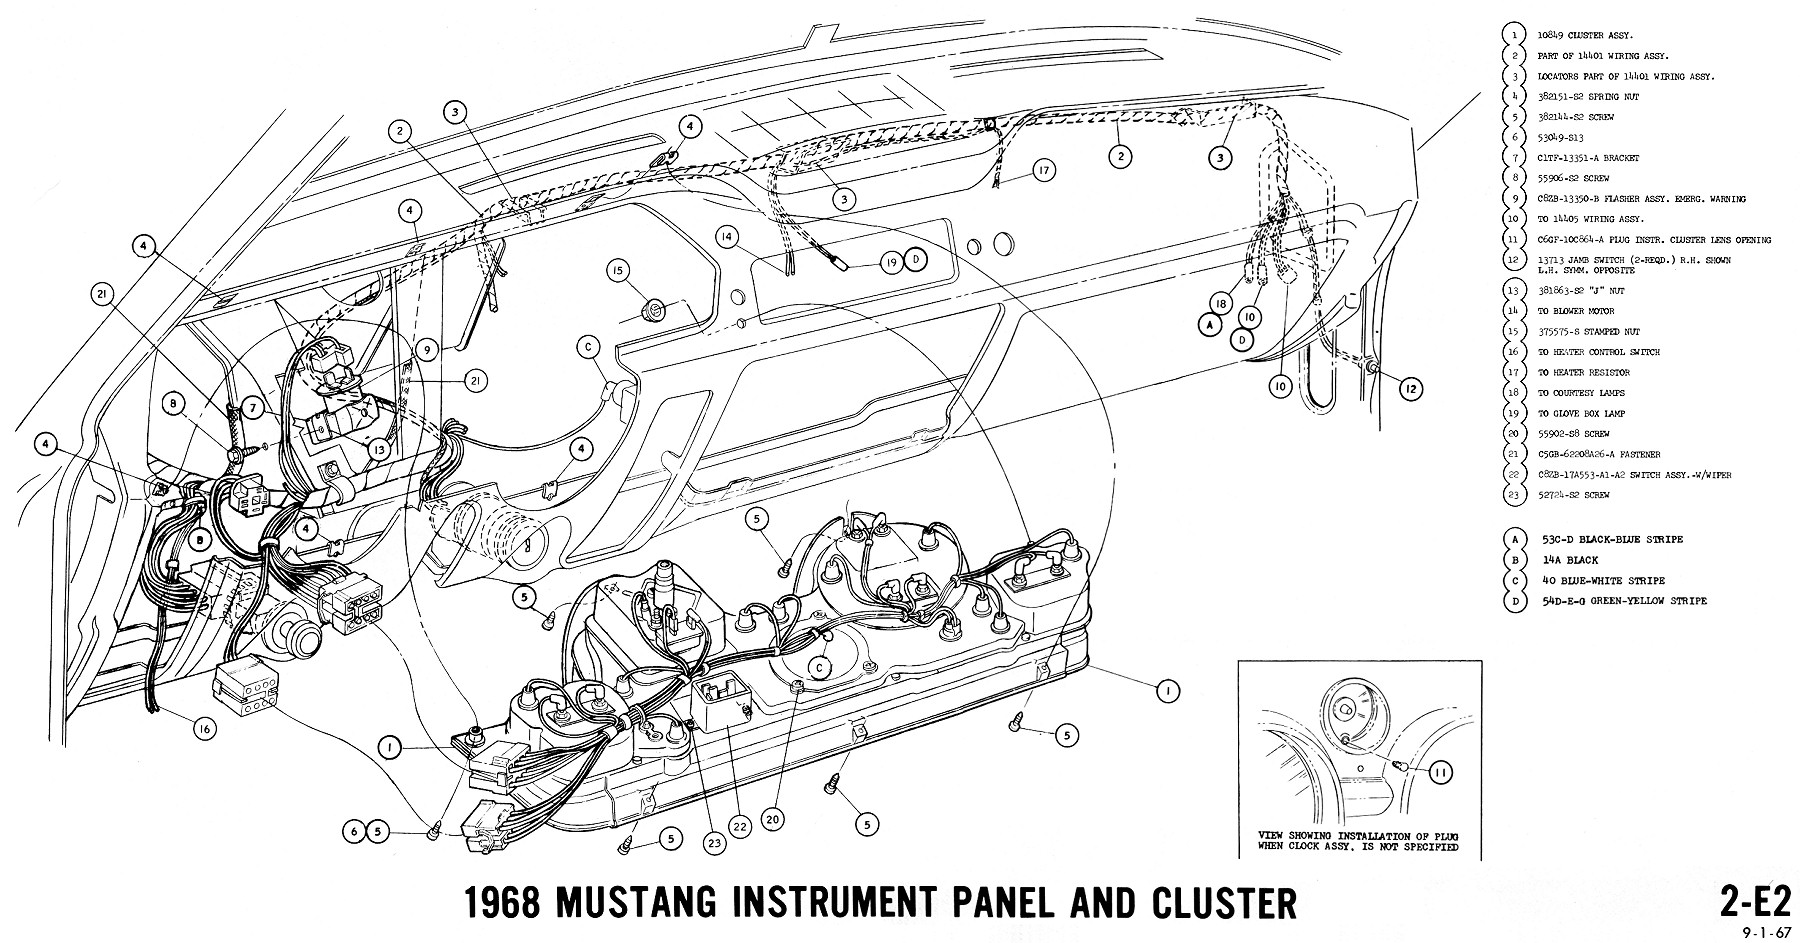 1968 Mustang Wiring Diagram Vacuum Schematics on electrical wiring diagram symbols pdf